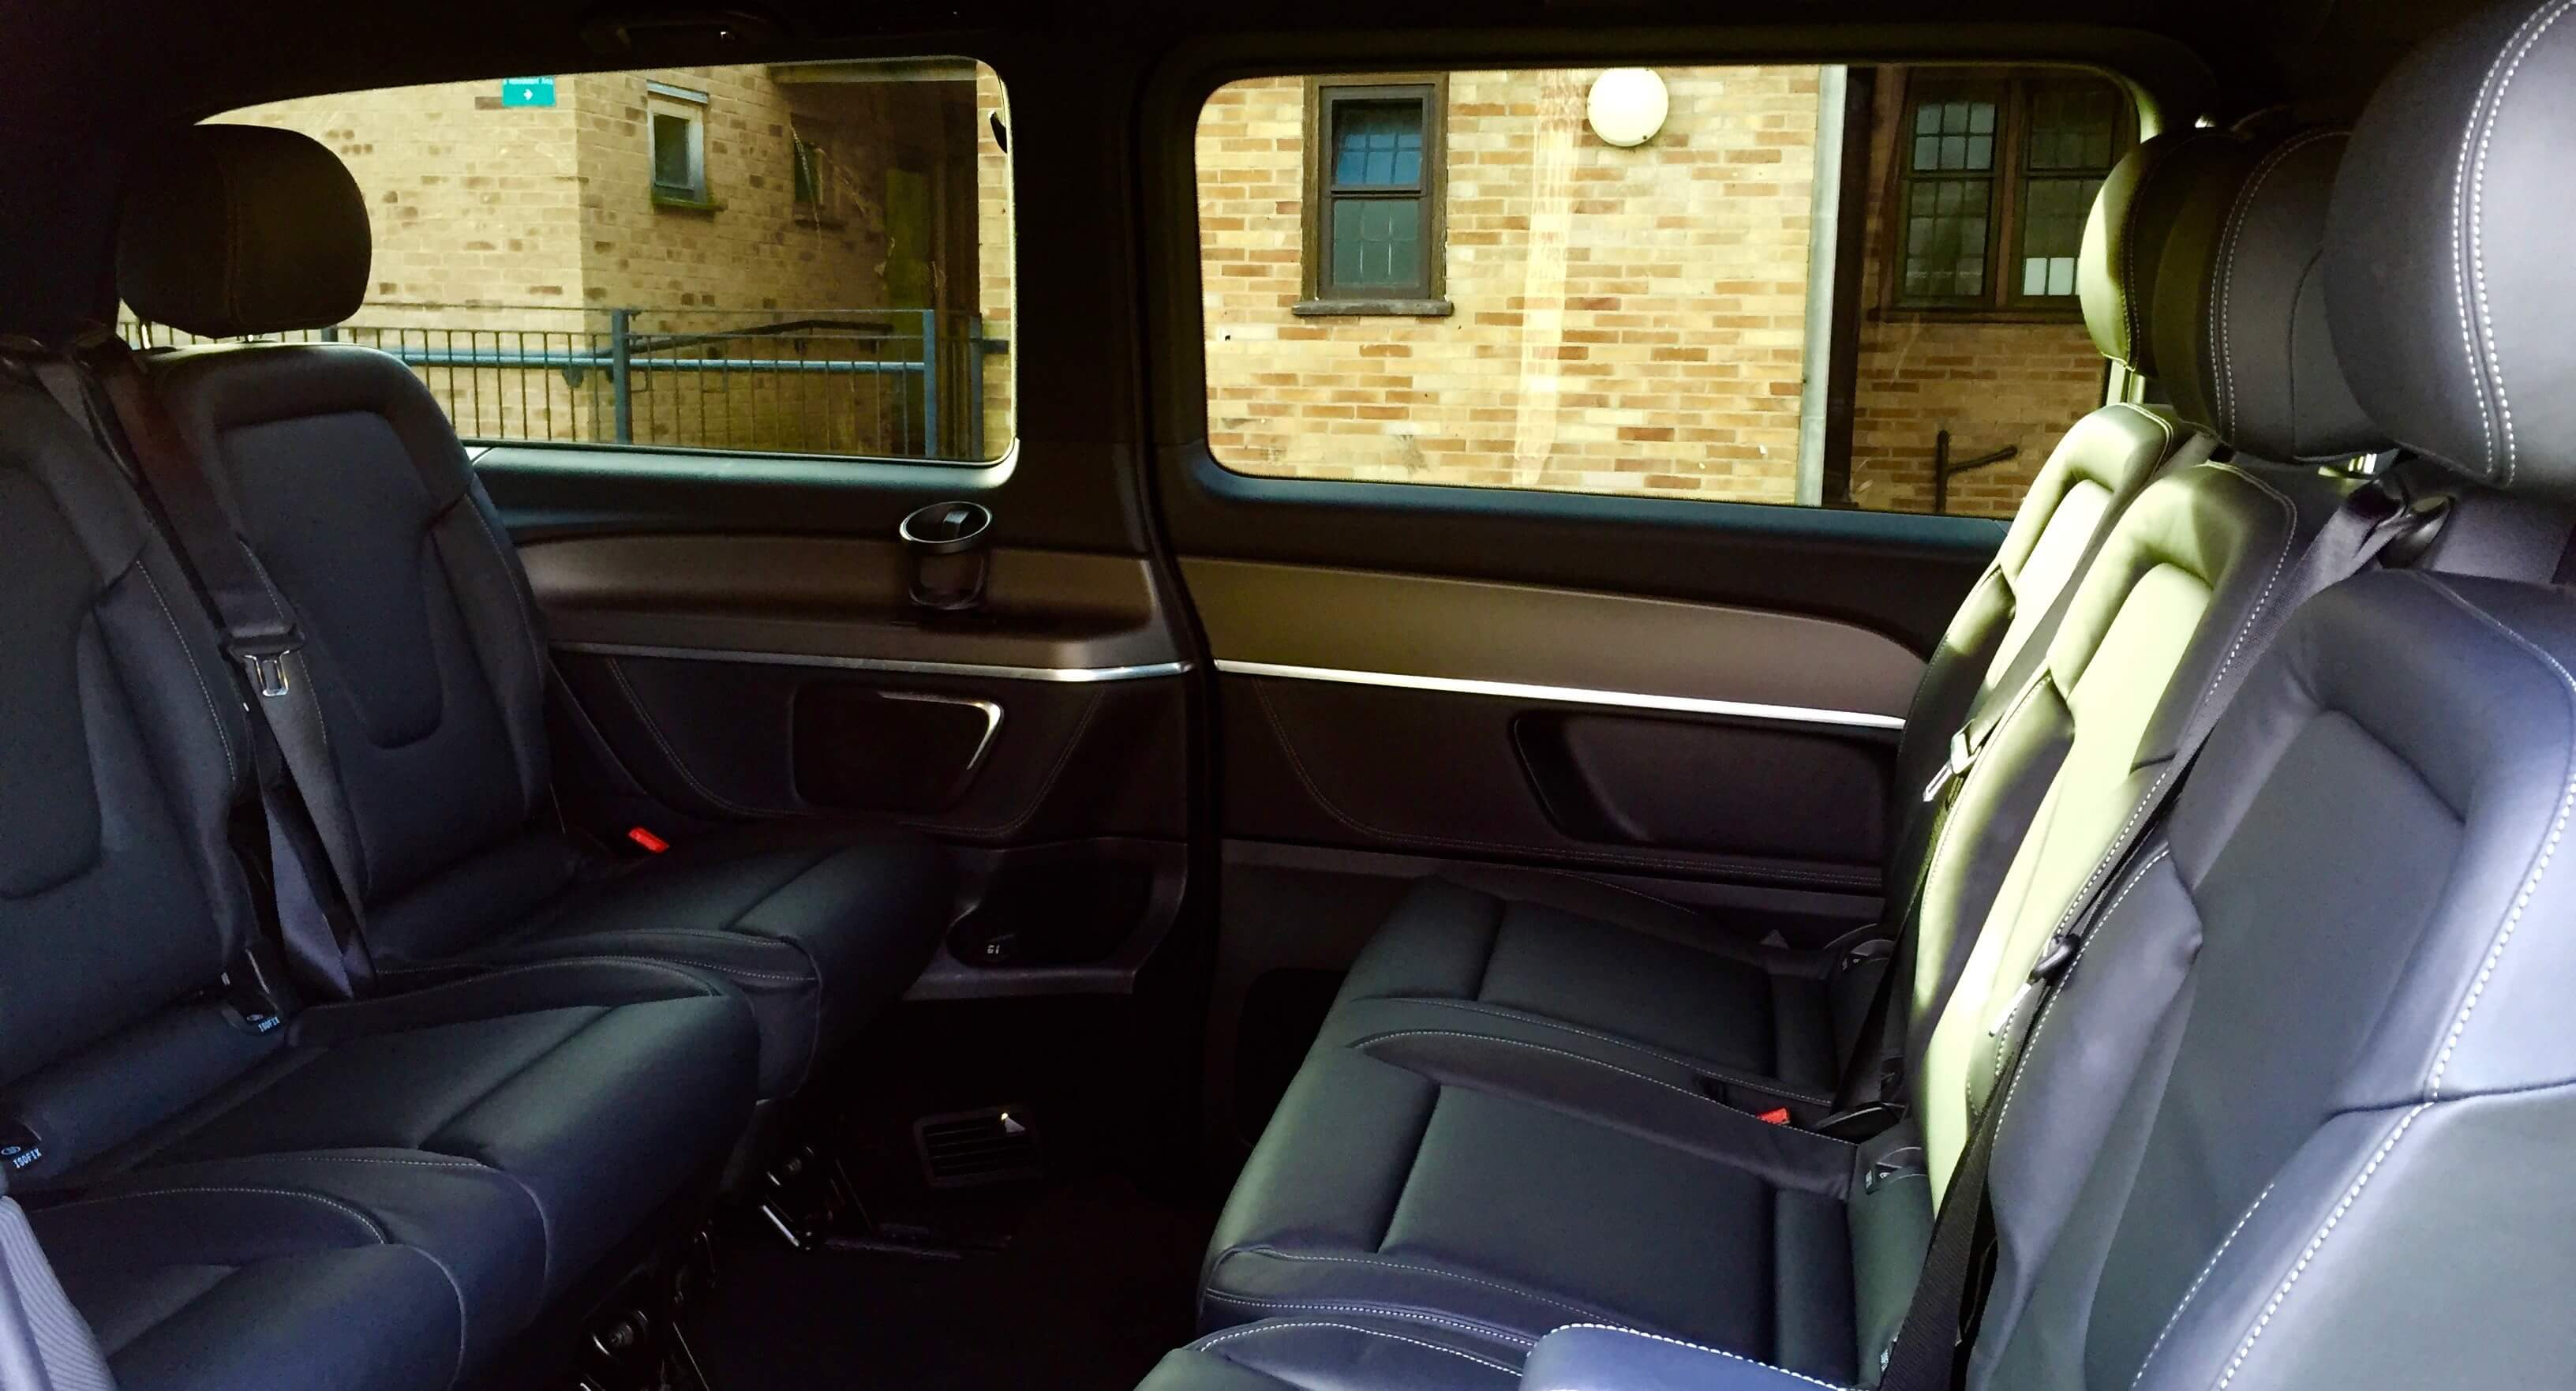 Mercedes Viano V Class Hire With Chauffeur In London Llc